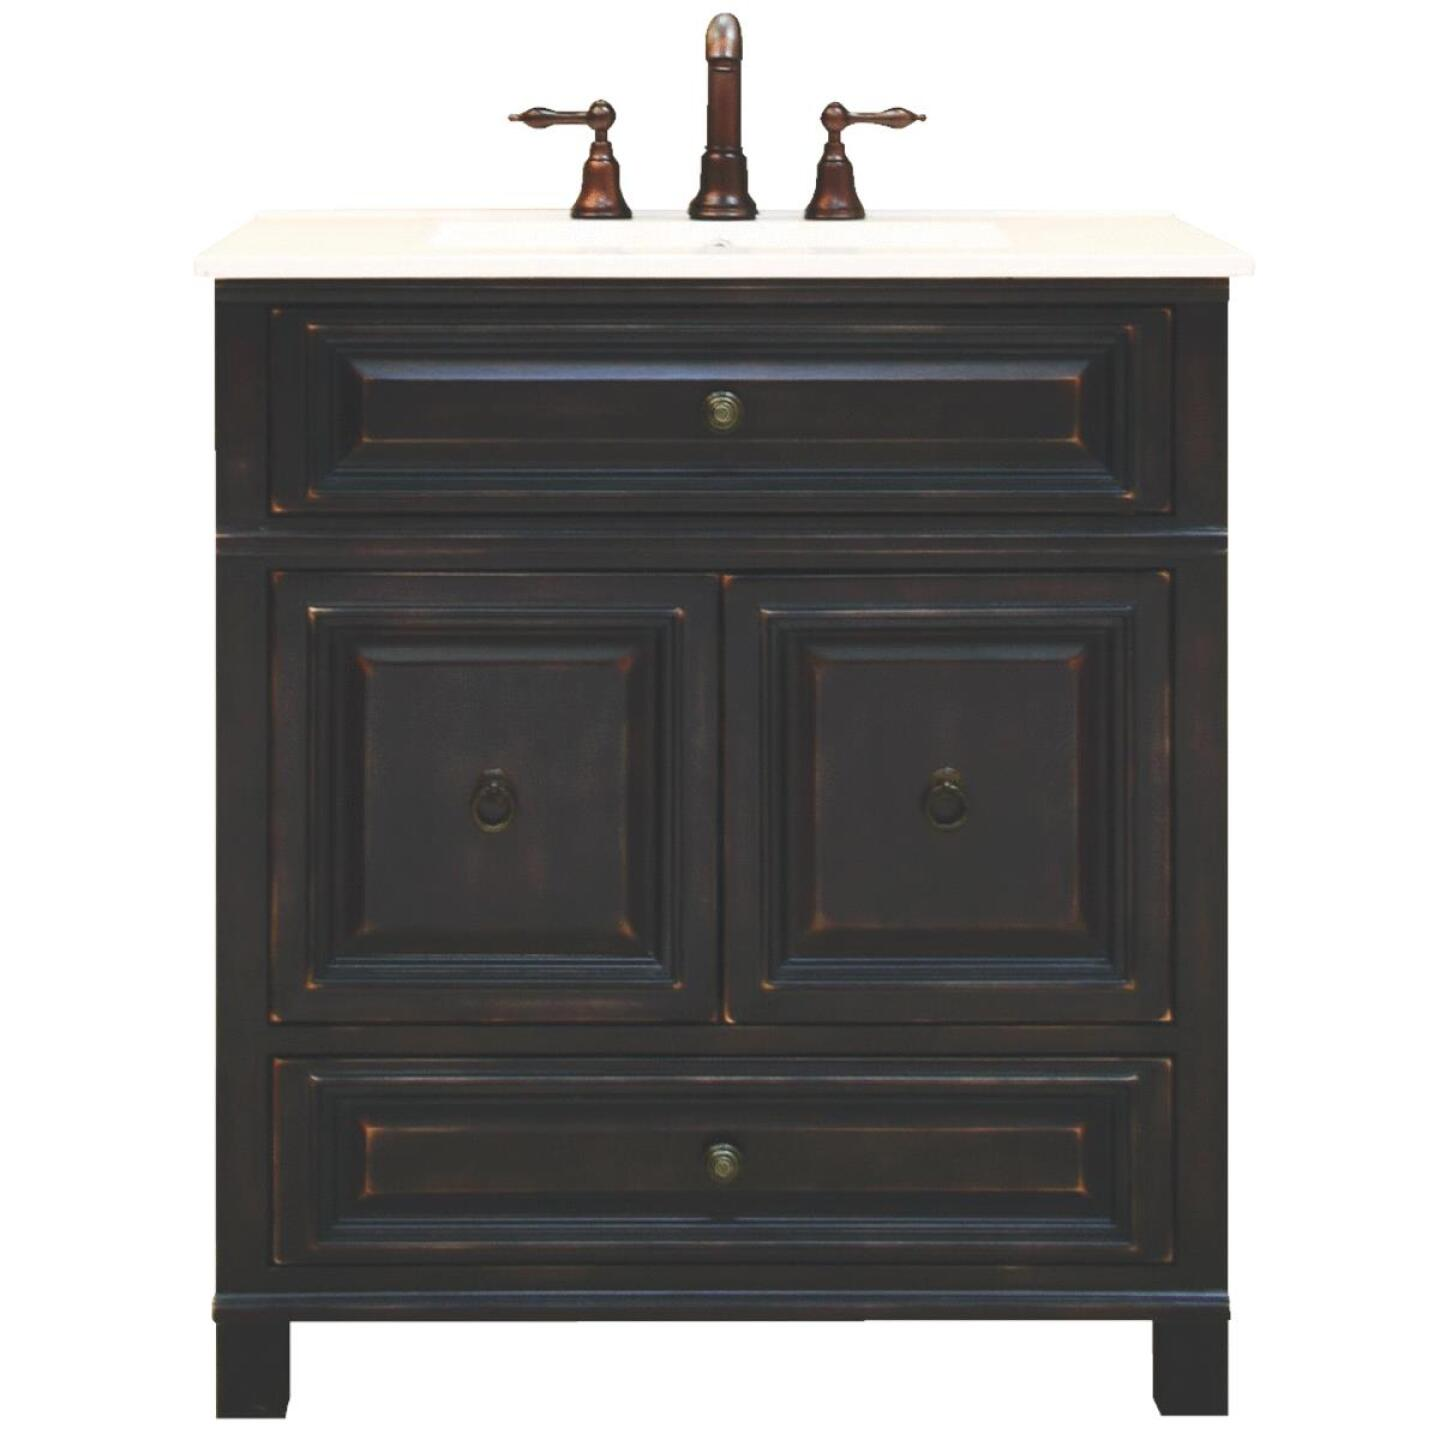 Sunny Wood Barton Hill Black Onyx 30 In. W x 34 In. H x 21 In. D Vanity Base, 2 Door/1 Drawer Image 190